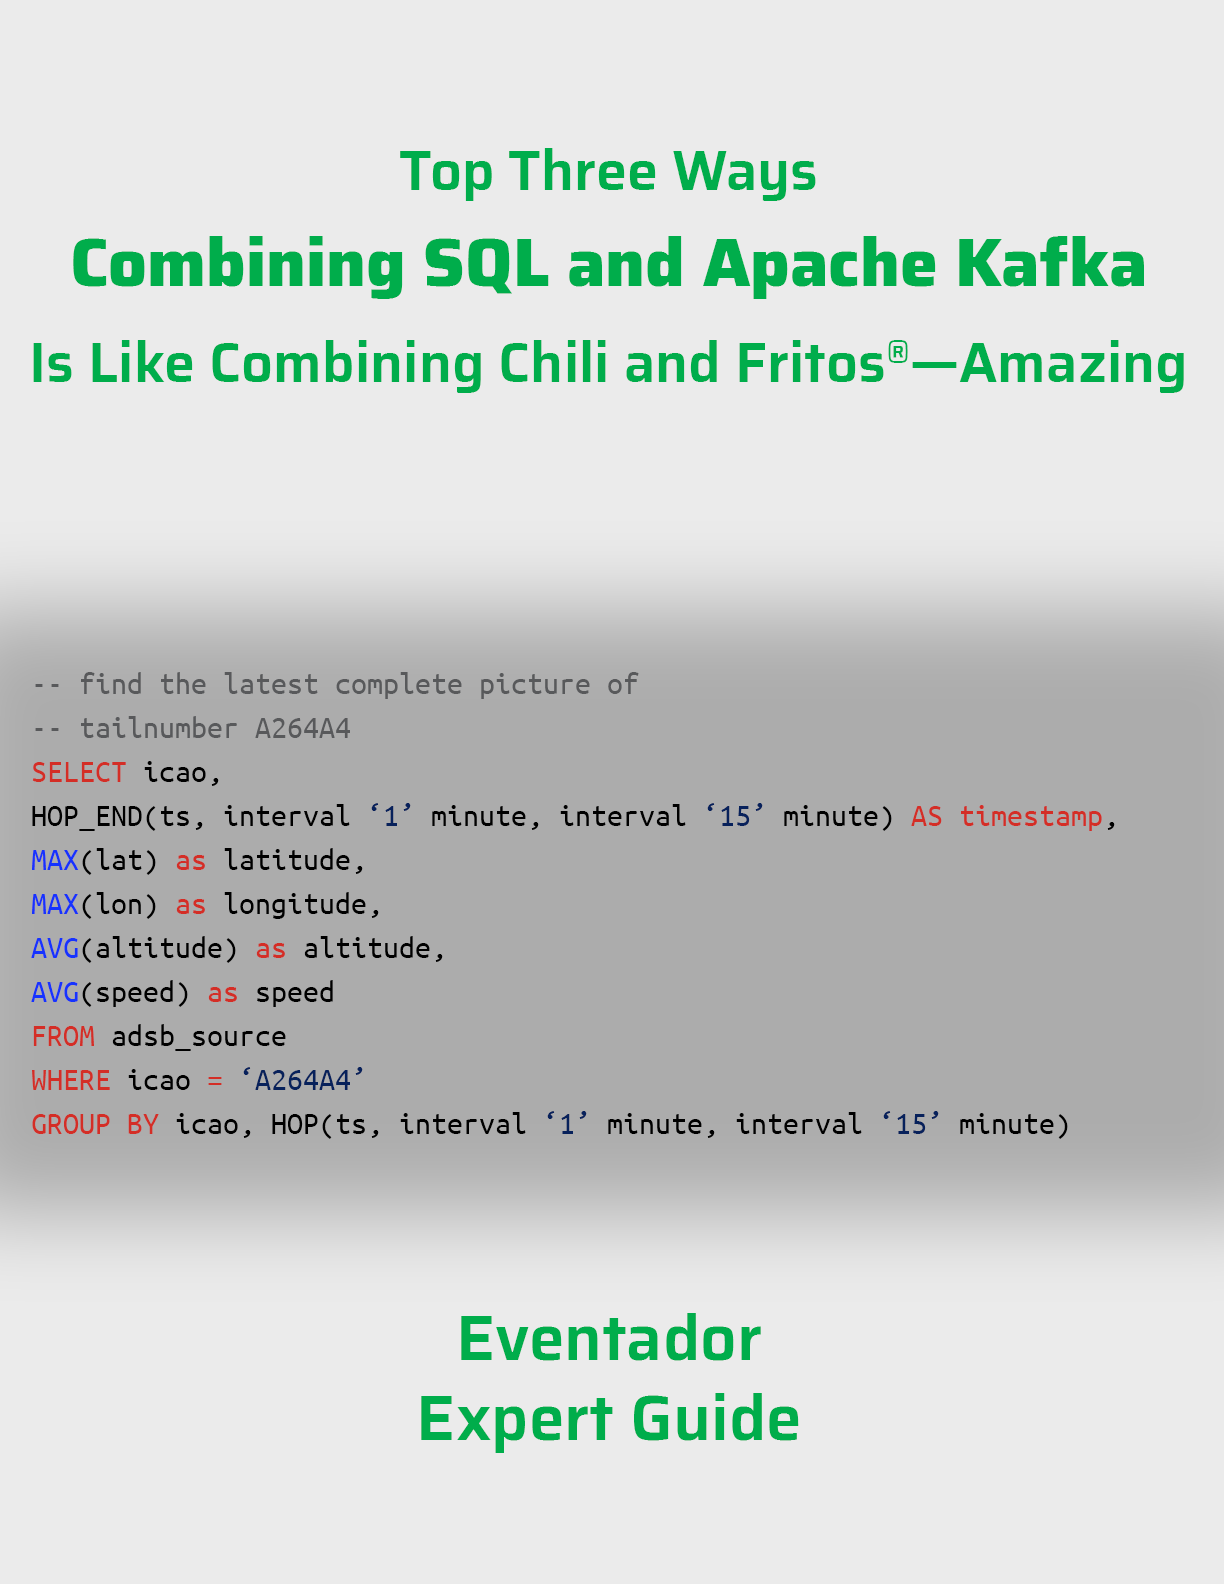 Expert Guide: Top 3 Ways Combining SQL and Apache Kafka is Amazing